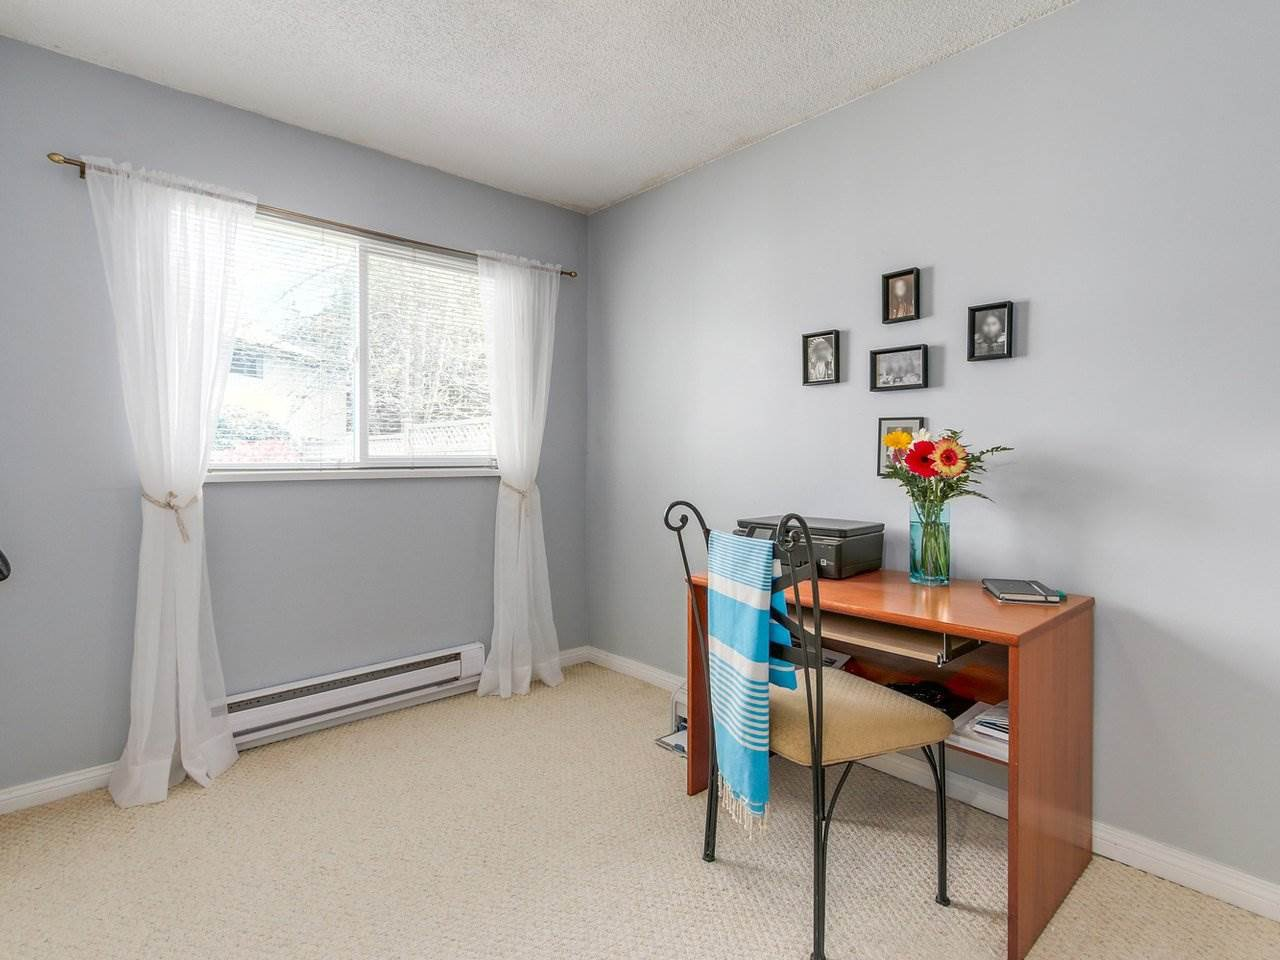 """Photo 13: Photos: 10550 HOLLYMOUNT Drive in Richmond: Steveston North House for sale in """"HOLLIES"""" : MLS®# R2366603"""